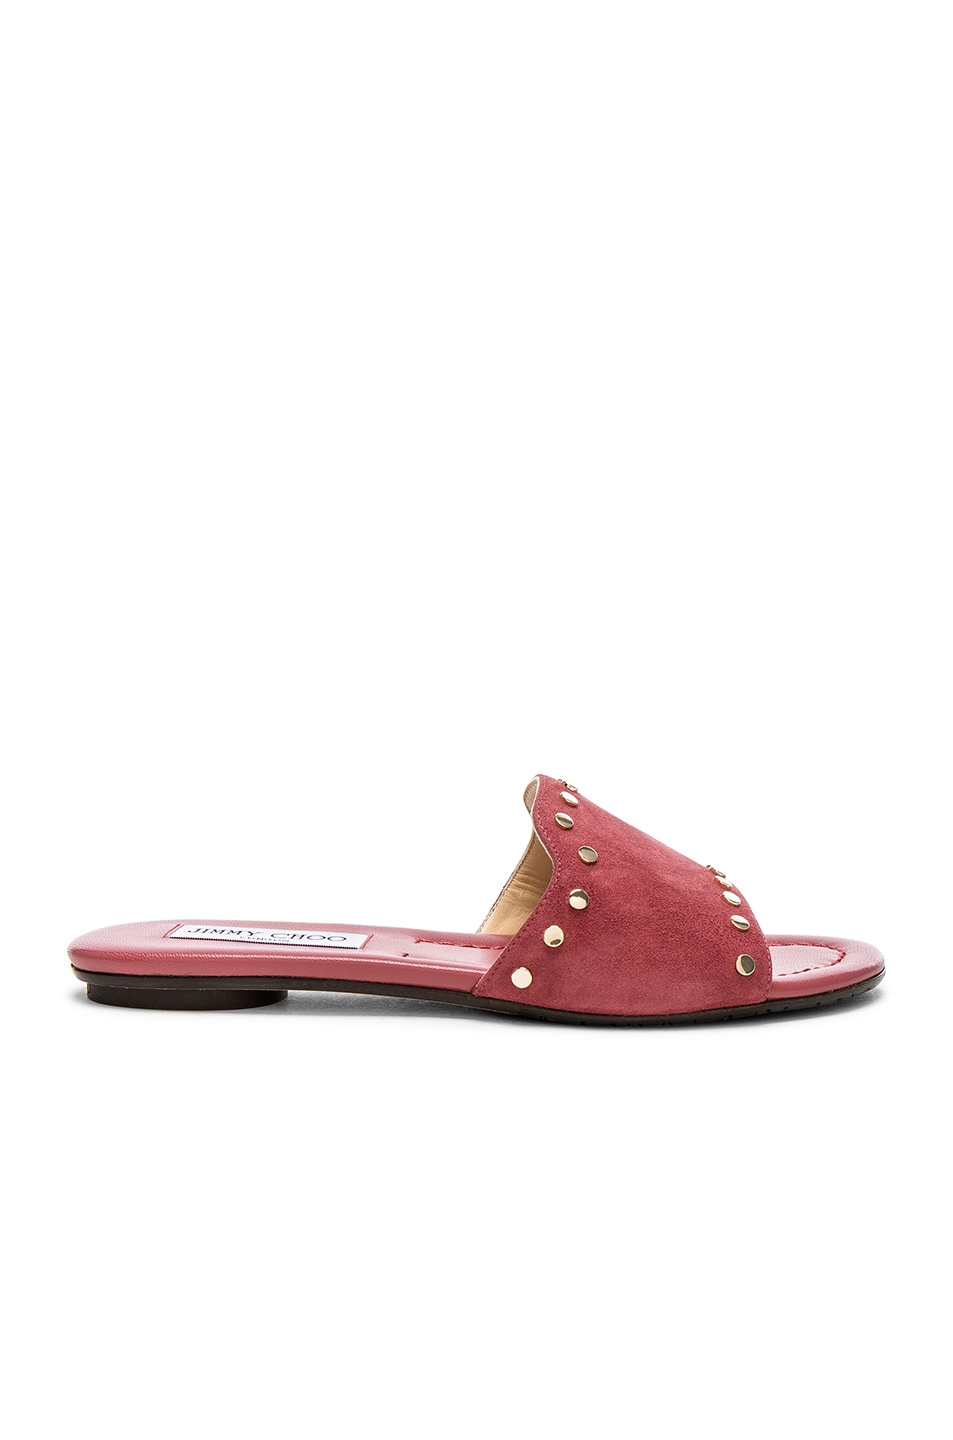 Image 1 of Jimmy Choo Suede Nanda Flats with Studs in Vintage Rose & Gold